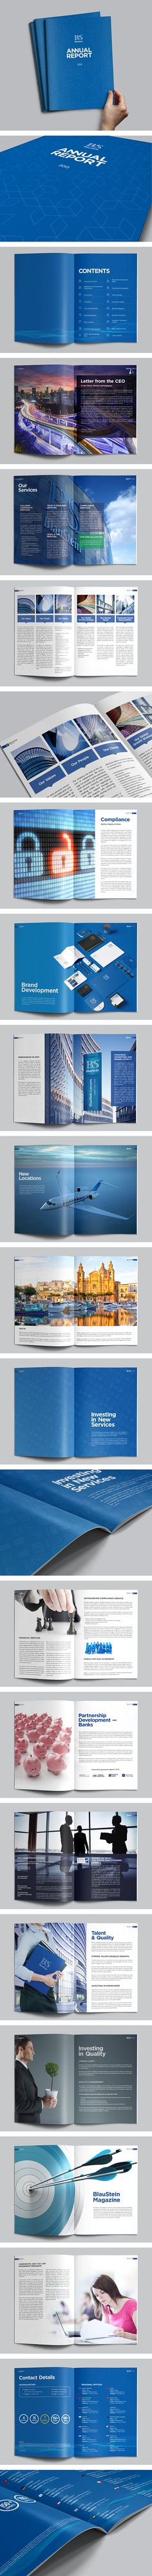 BlauStein Annual Report 2013 by Sergey Vasilev, via Behance